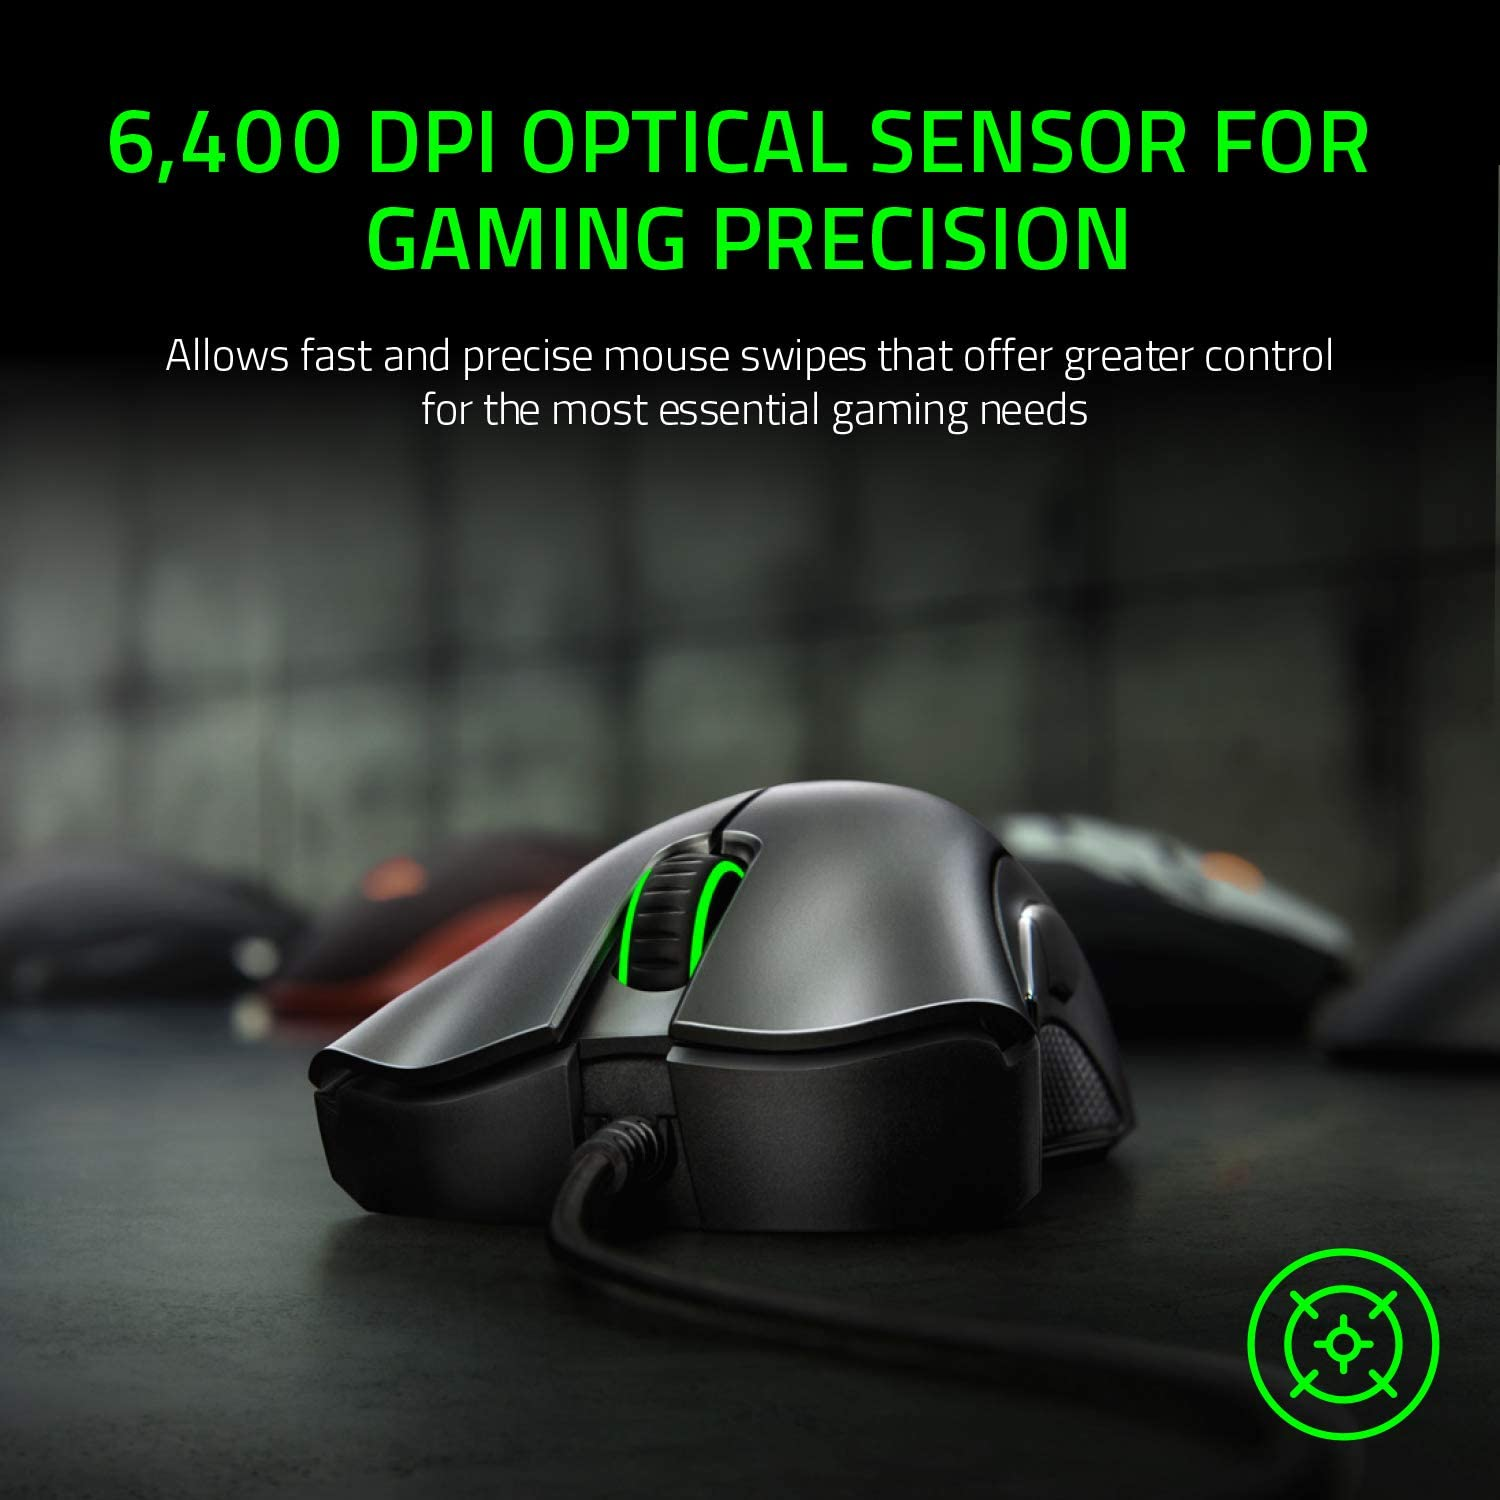 Razer DeathAdder Essential Wired Gaming Mouse 6400 DPI OPTICAL SENSOR FOR GAMING PRECISION